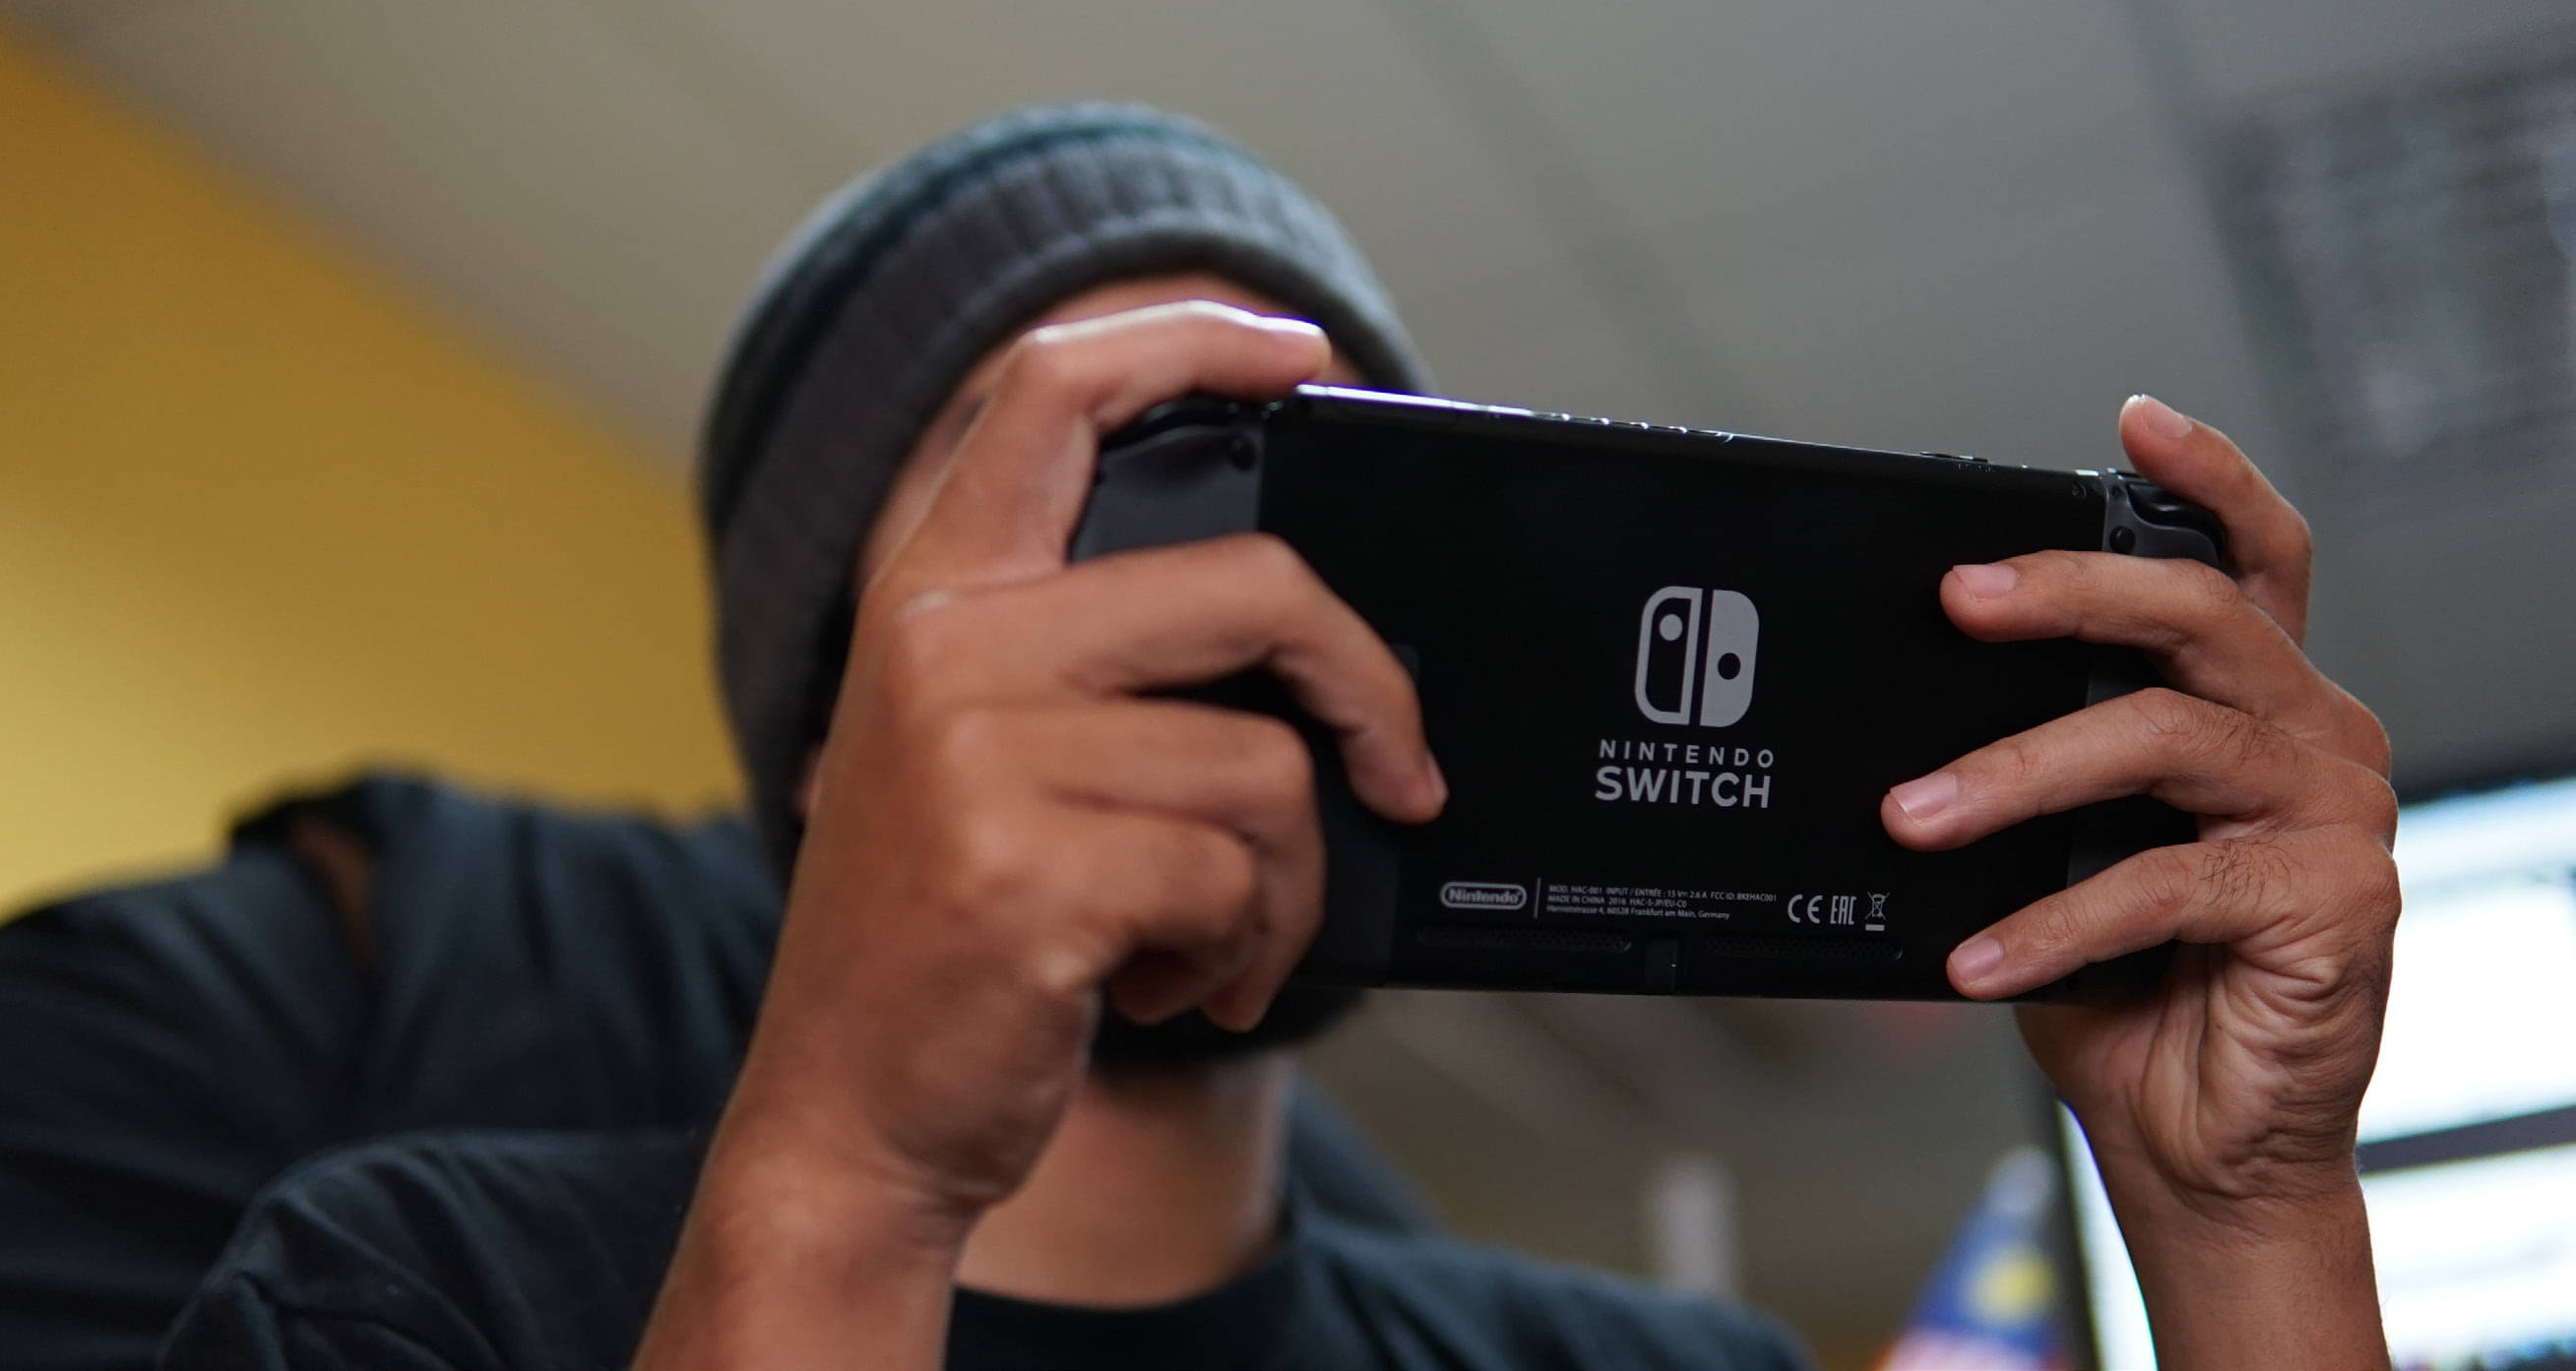 Gamer Builds His Own Nintendo Switch for $199